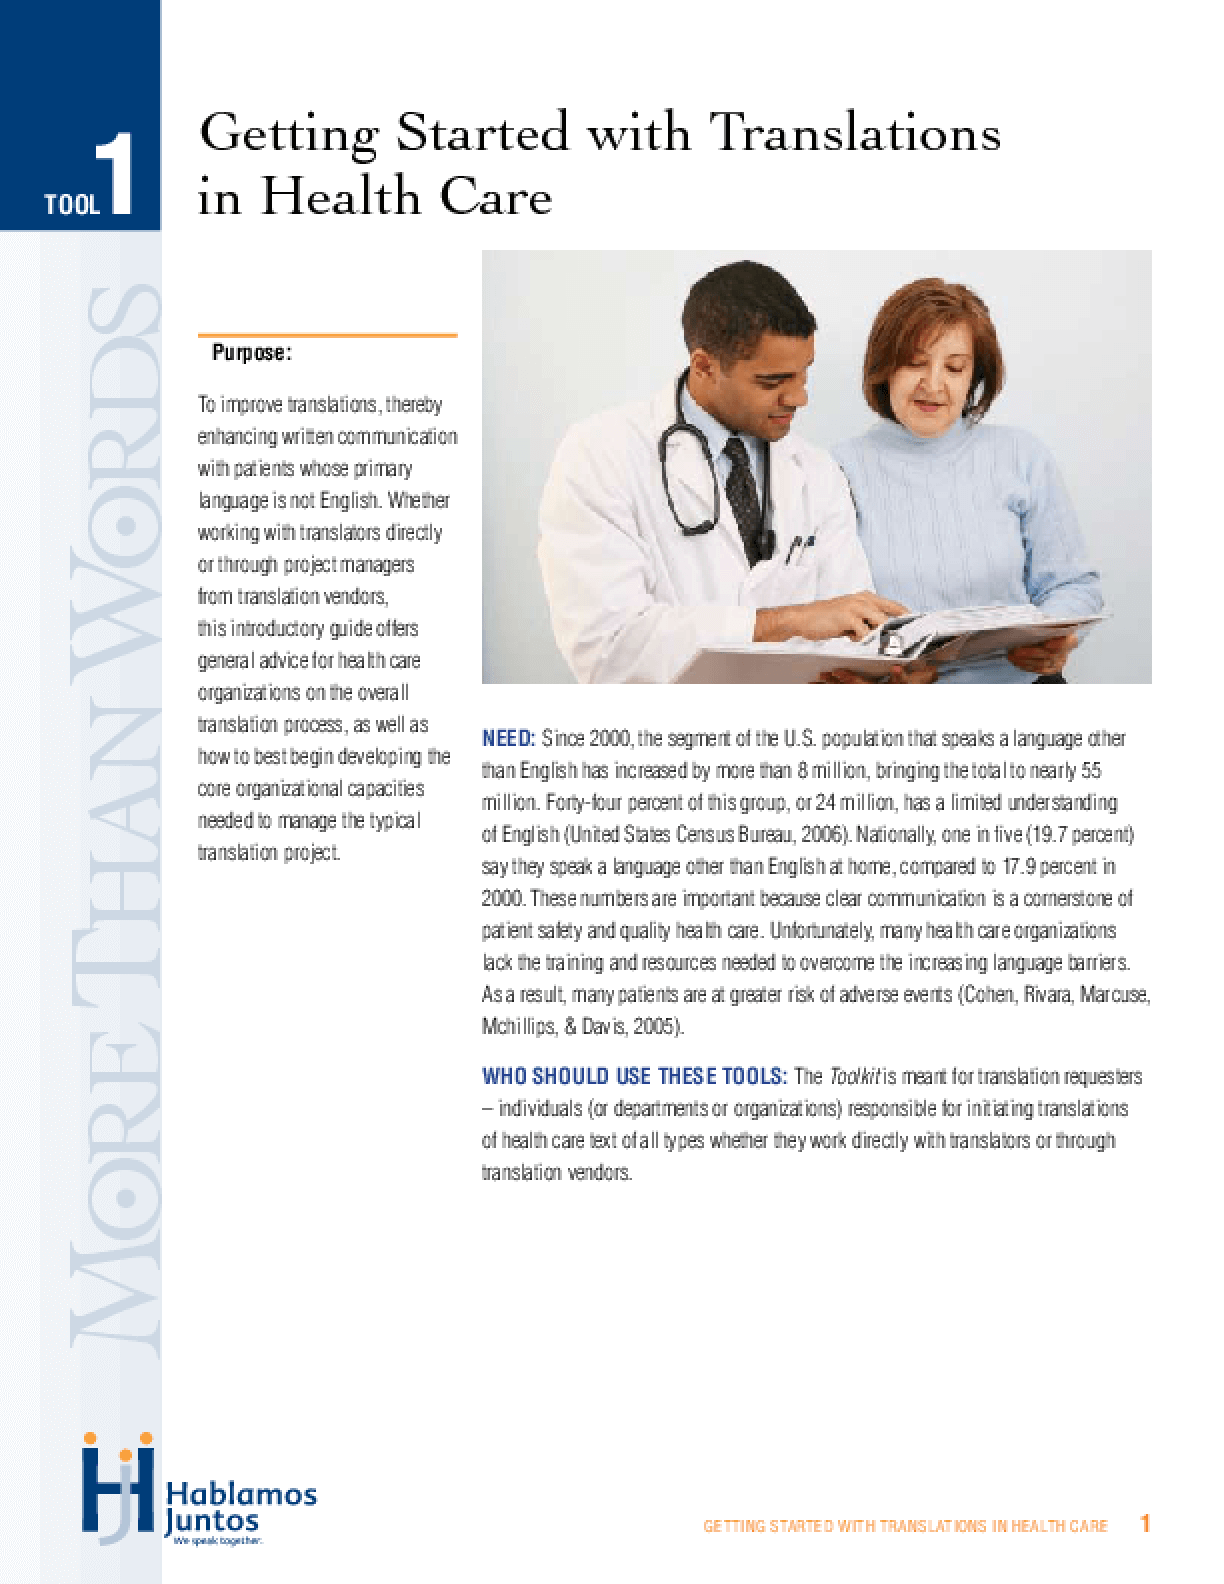 Practical Solutions for Effective Translated Health Information: Getting Started With Translations in Health Care